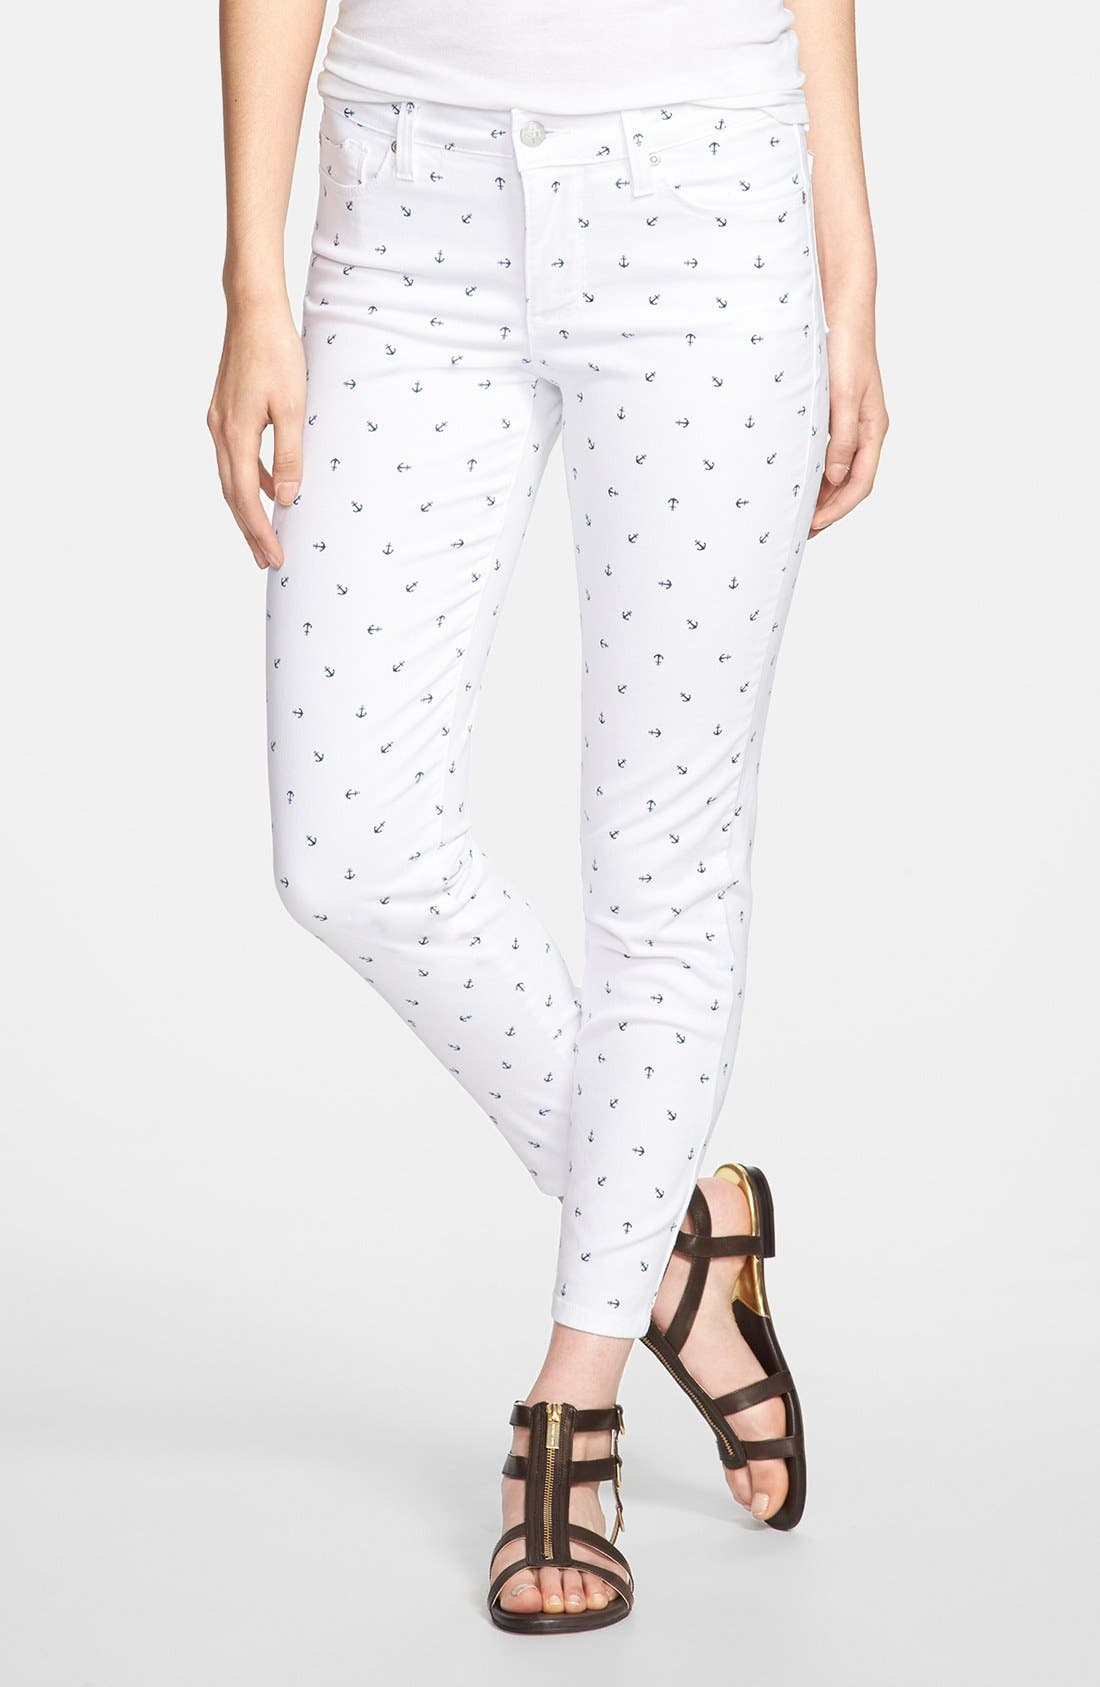 Alternate Image 1 Selected - NYDJ 'Clarissa' Print Fitted Stretch Ankle Jeans (Optic White Anchors) (Regular & Petite)